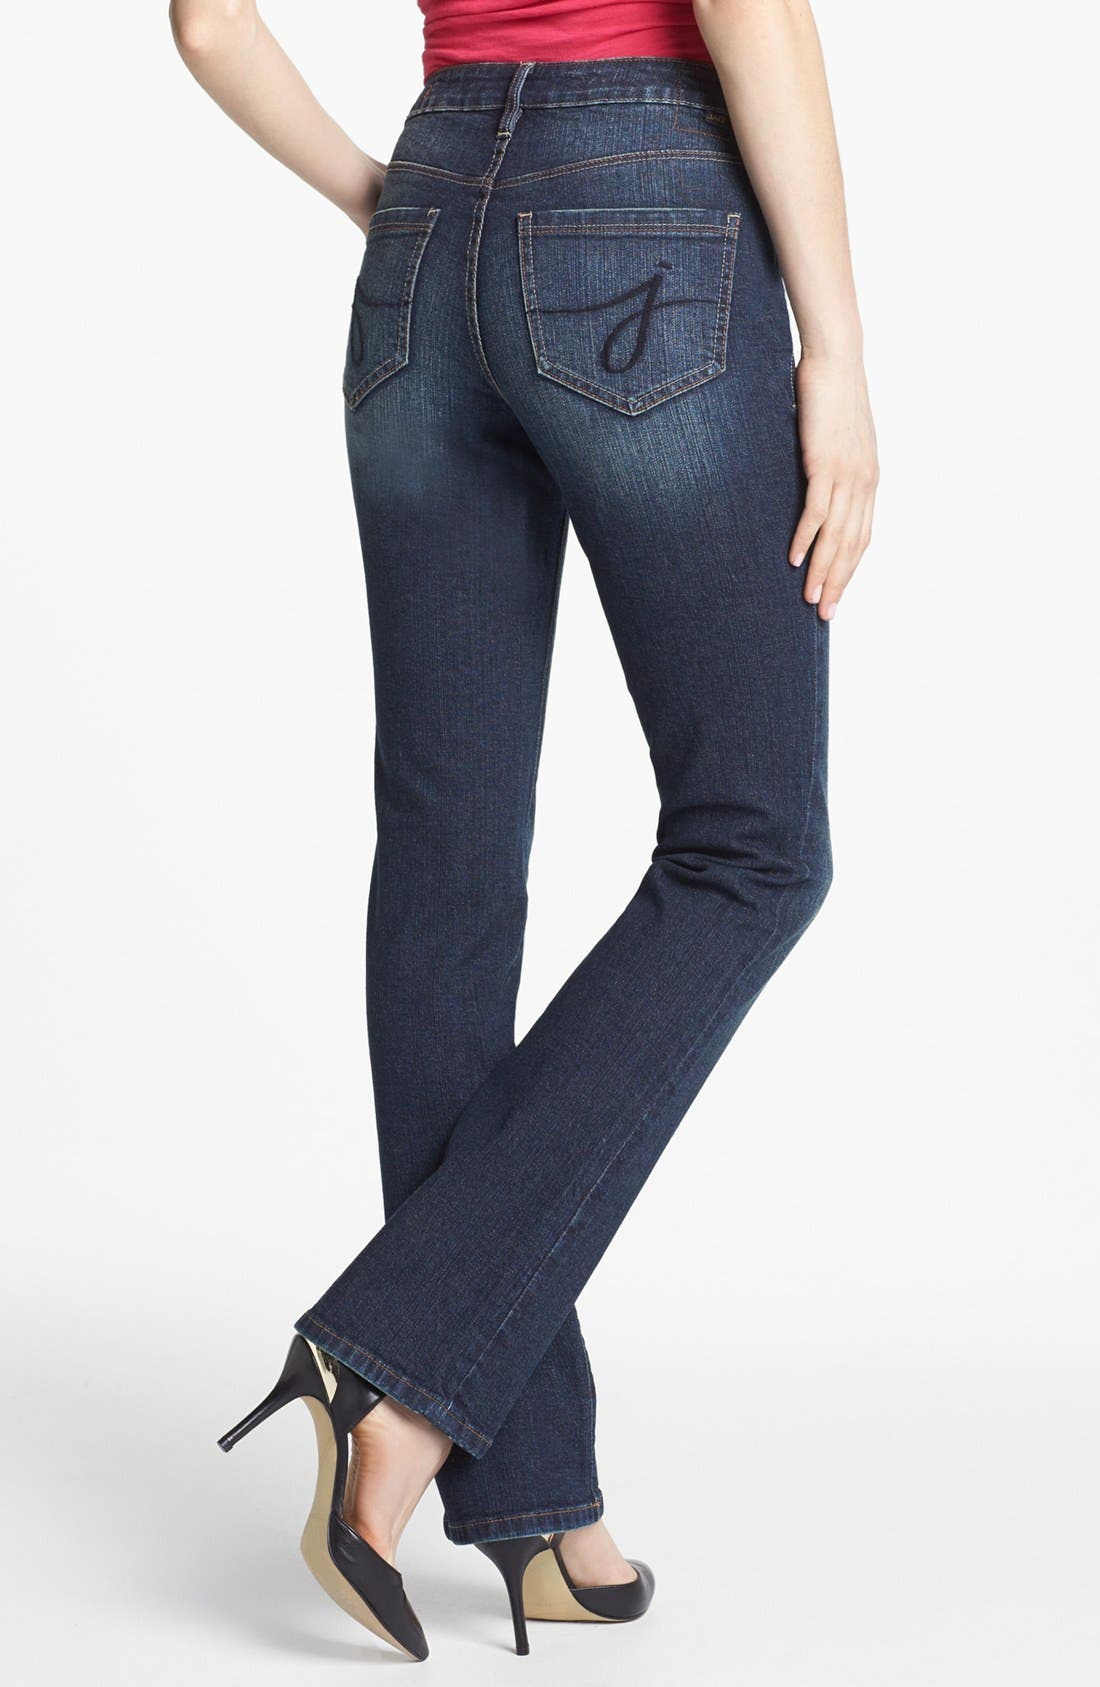 Alternate Image 2  - Jag Jeans 'Foster' Bootcut Jeans (Blue English) (Petite)